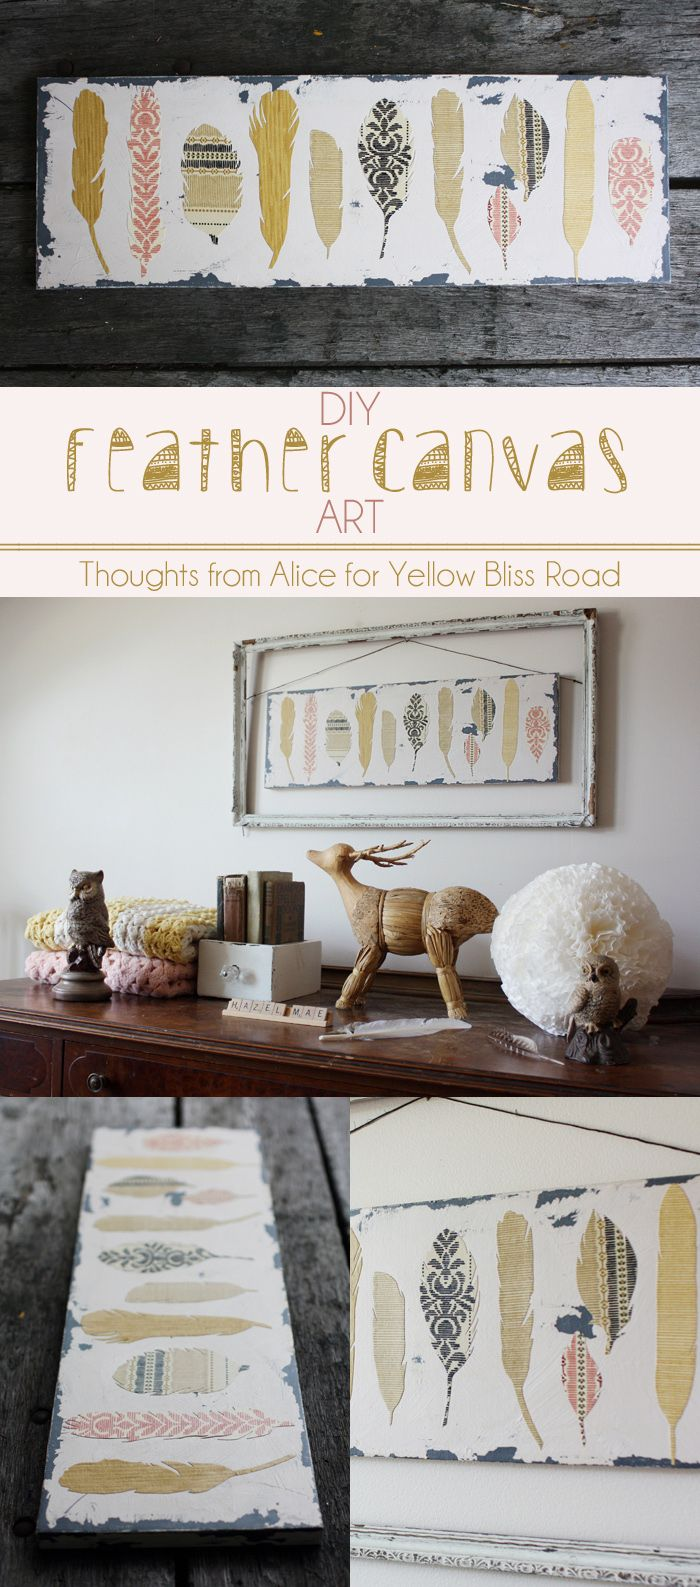 DIY Feather Canvas Wall Art - Super simple tutorial to create a stunning piece of custom art! Thoughts from Alice for Yellow Bliss Road